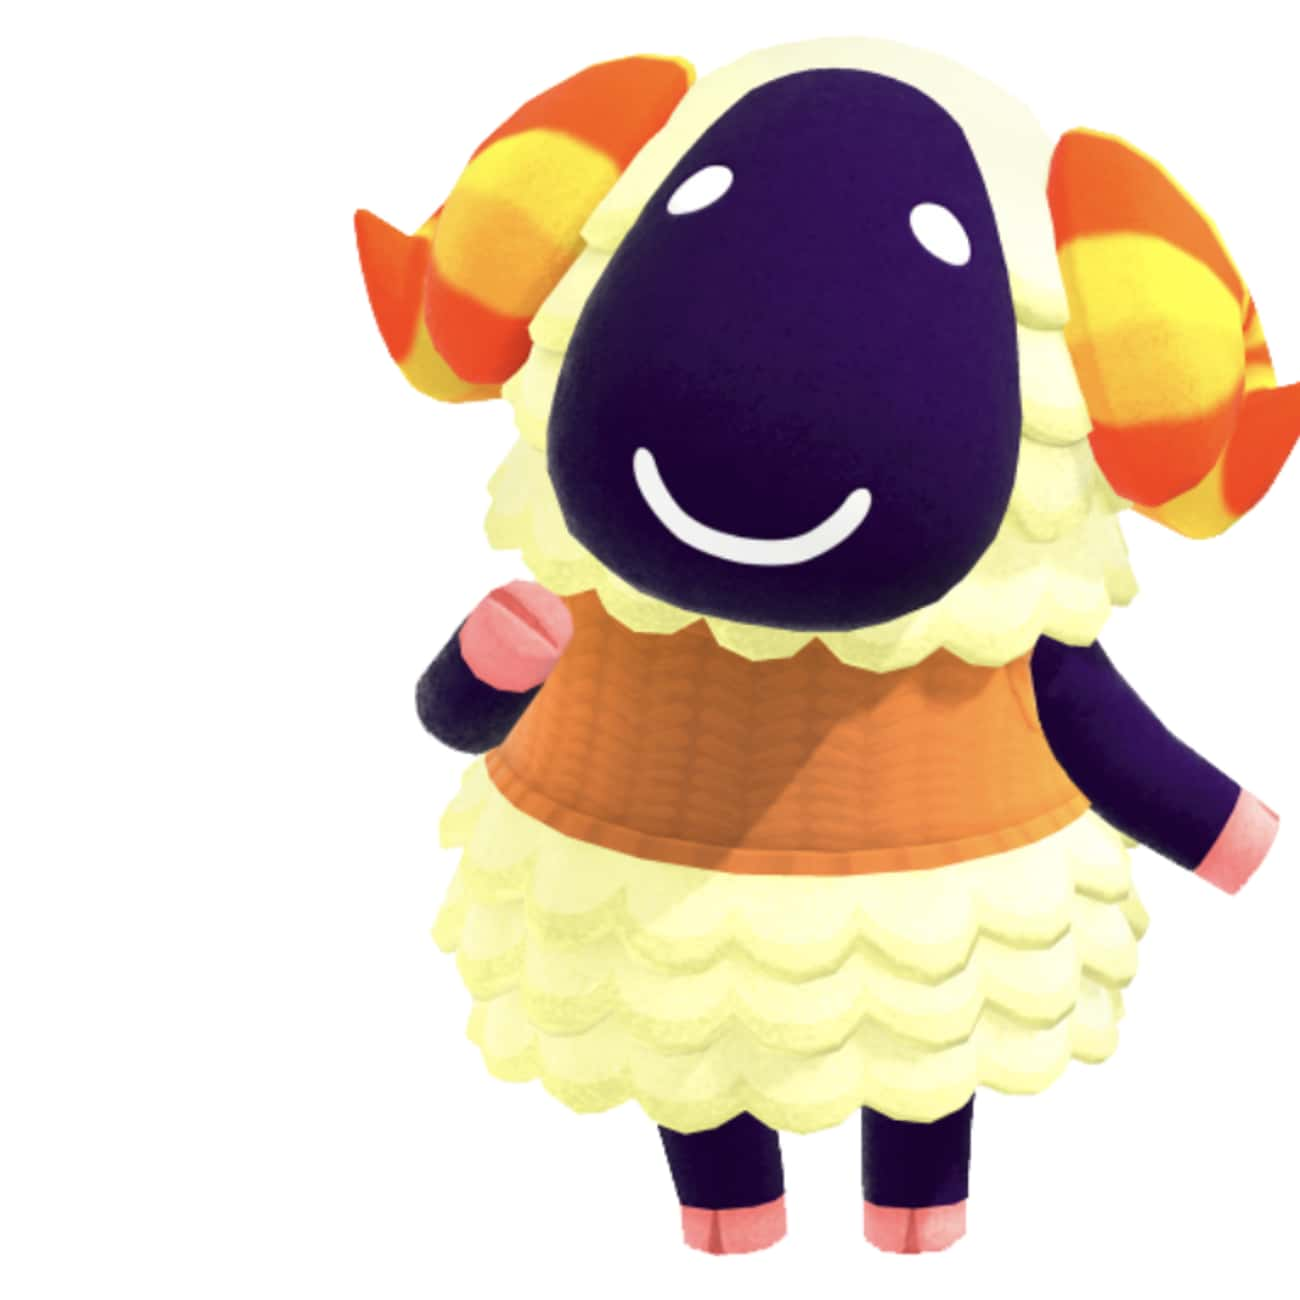 Vesta is listed (or ranked) 3 on the list Who's Your Favorite Sheep Villager In 'Animal Crossing: New Horizons'?